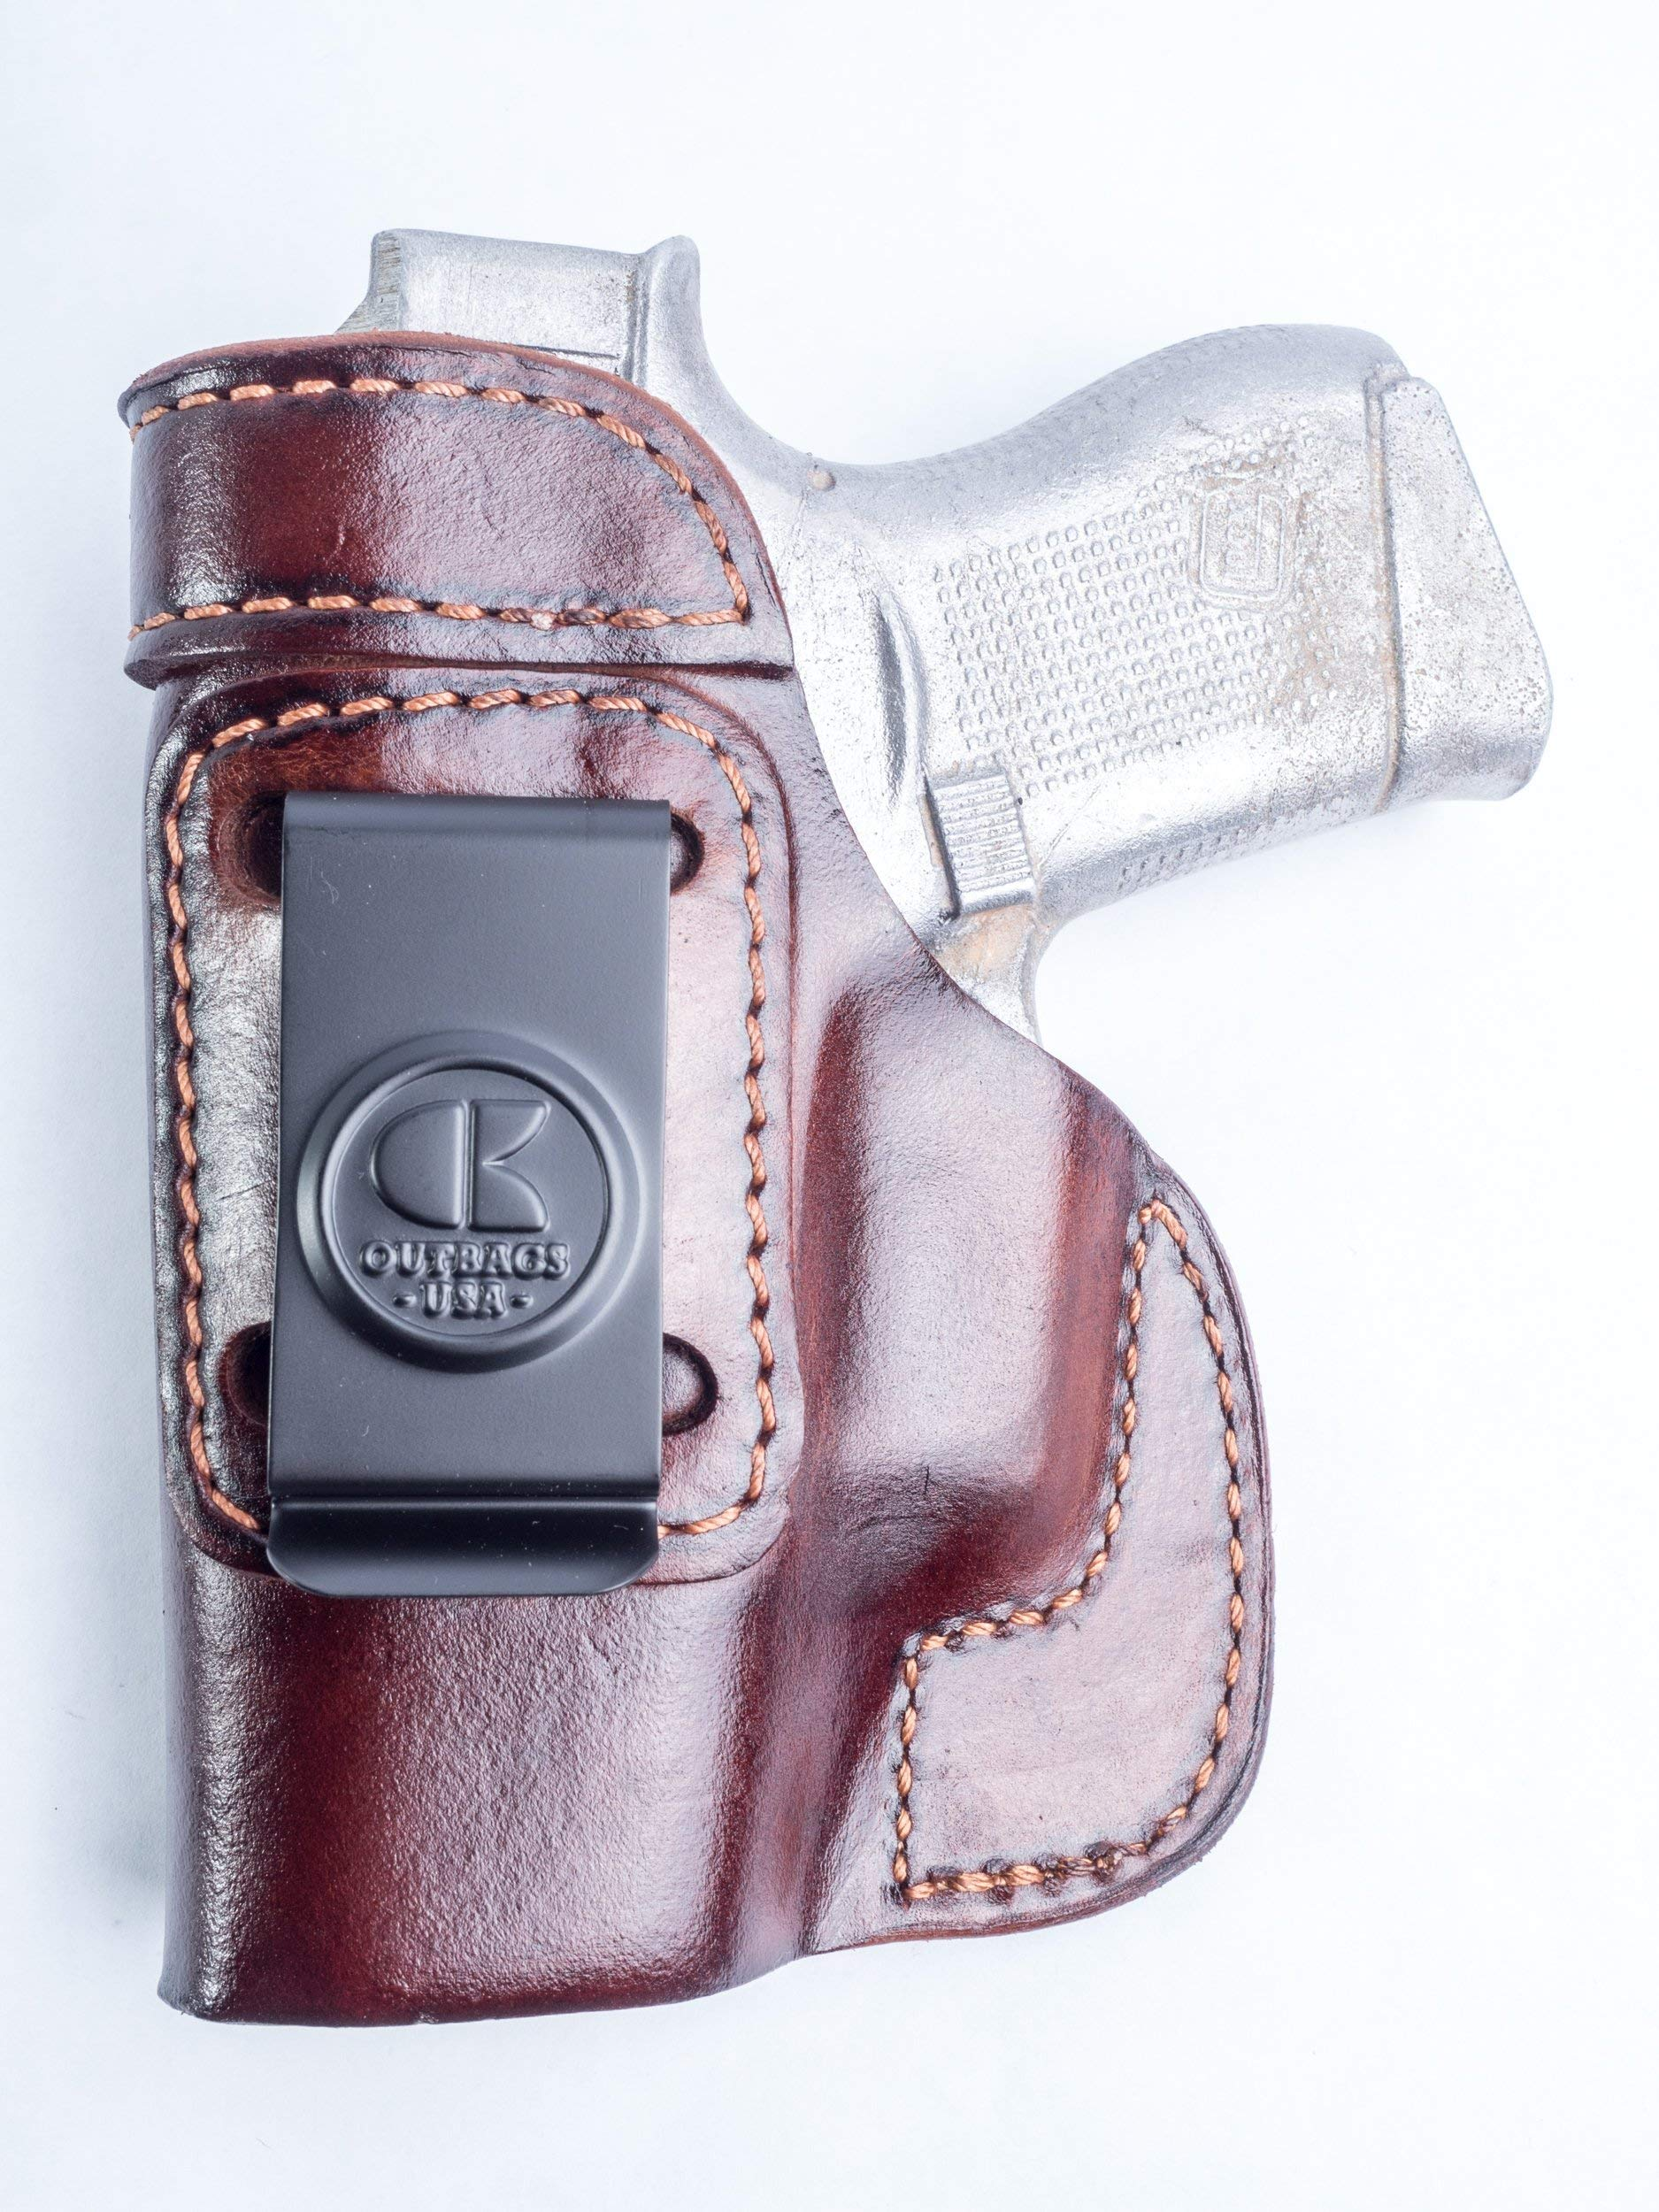 OutBags USA LS2G43 Full Grain Heavy Leather IWB Conceal Carry Gun Holster for Glock 43 G43 9mm. Handcrafted in USA.